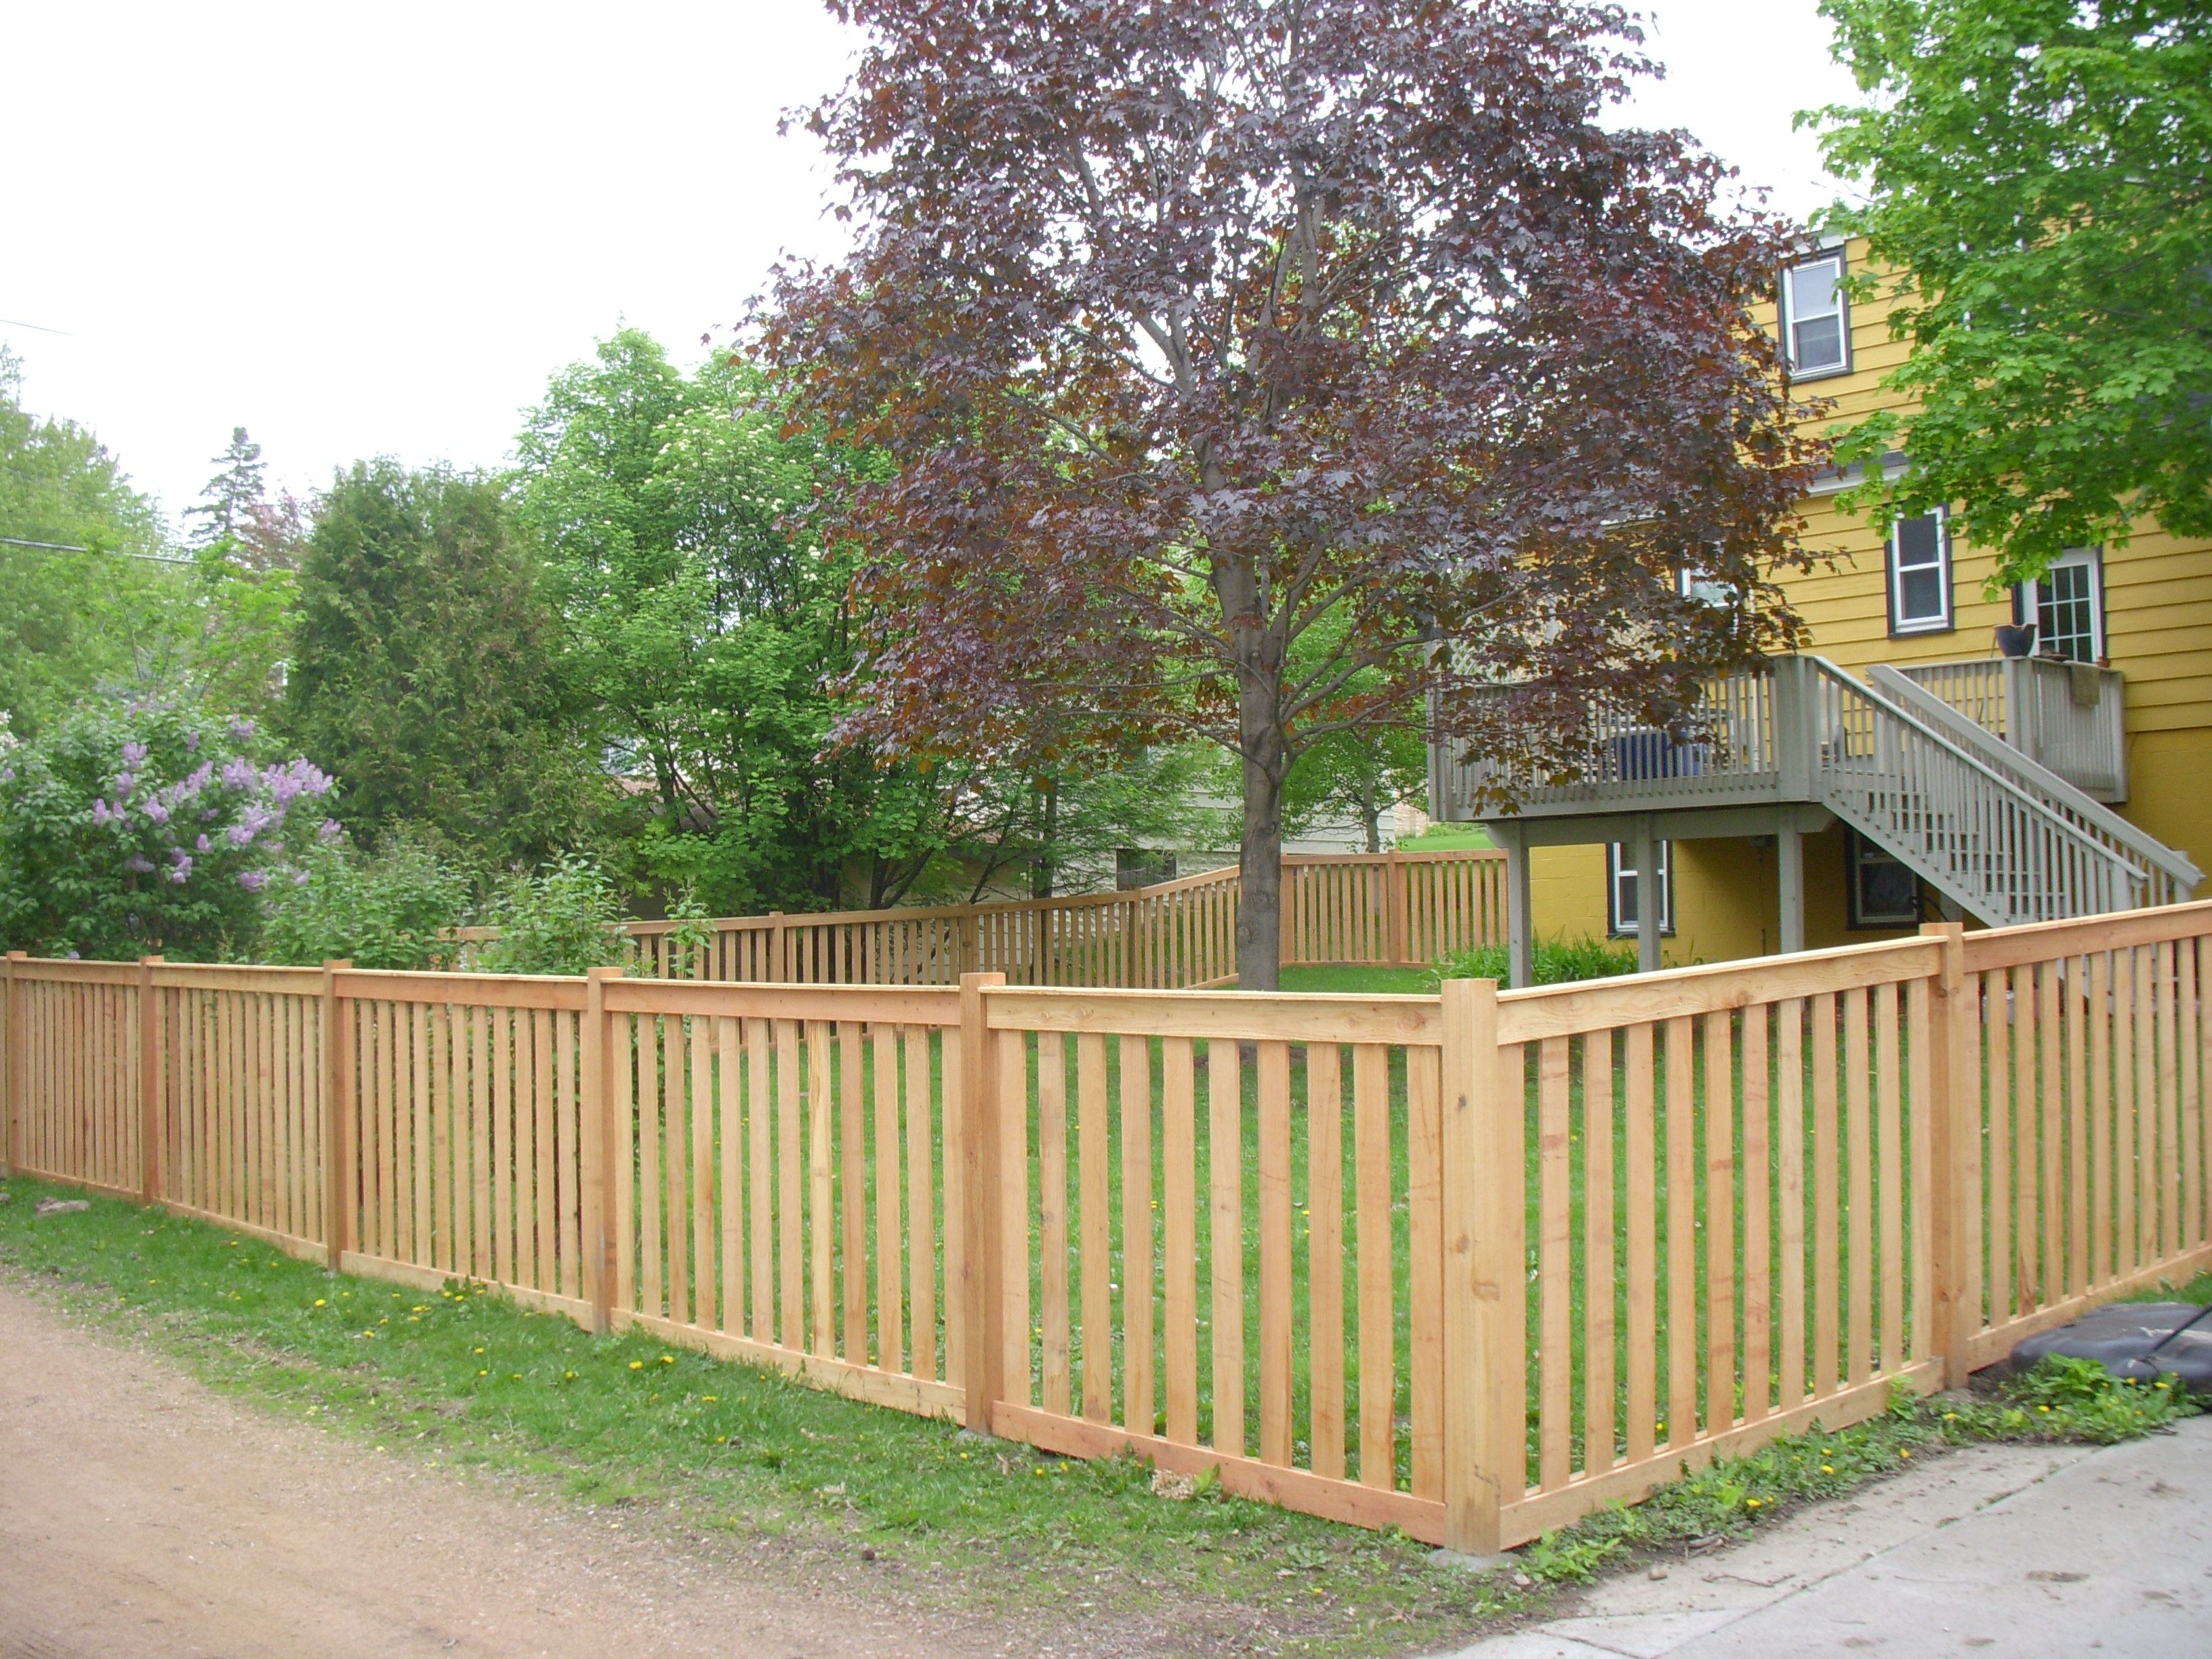 Cedar Picket Privacy Fence Designs Wood Picket Fence Backyard Fences